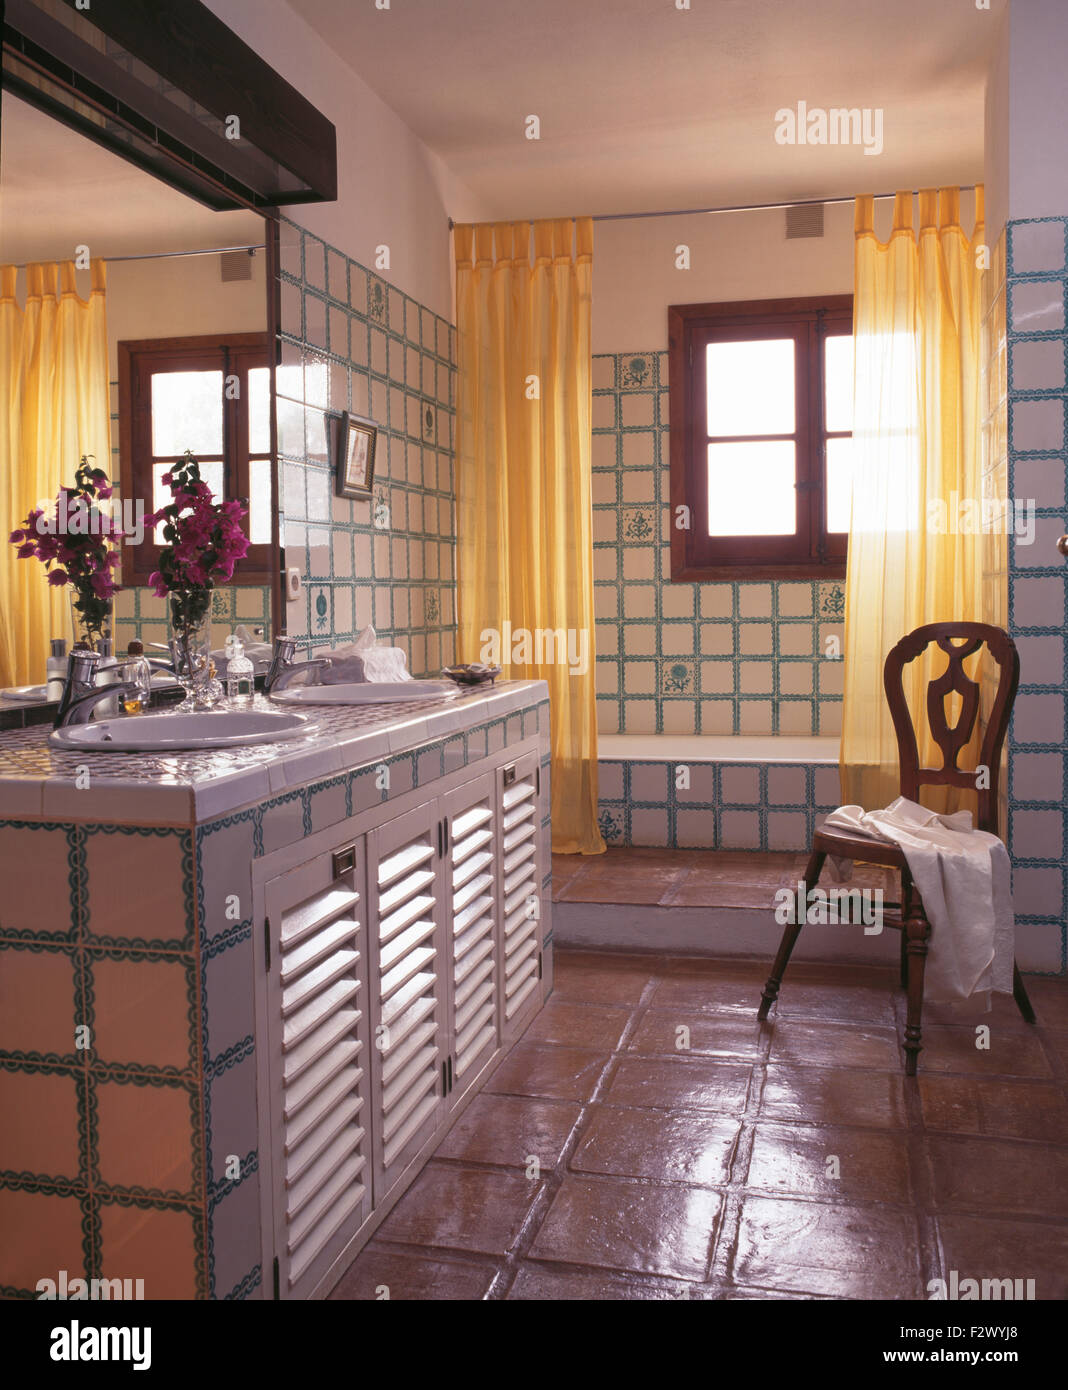 Yellow shower curtains on bath in tiled Spanish country bathroom ...